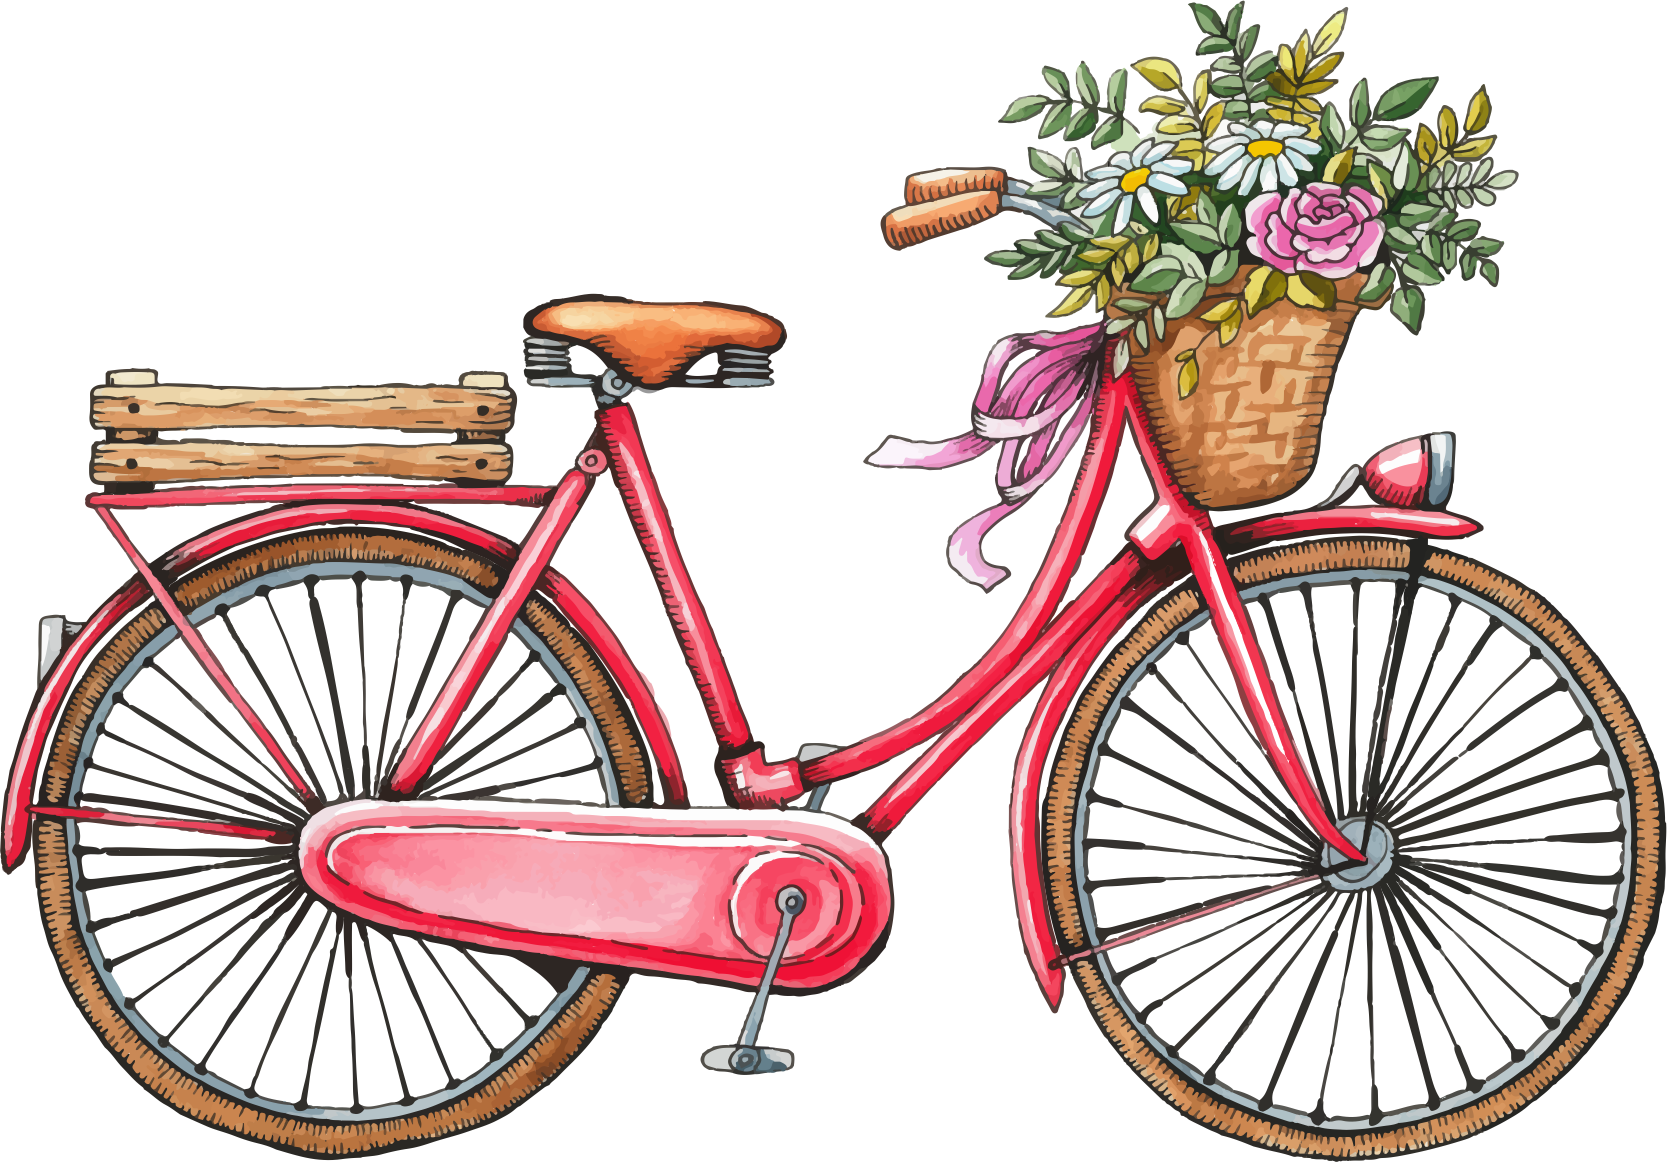 Vintage Bicycle Png - Bicycle Wedding invitation Save the date Watercolor painting ...